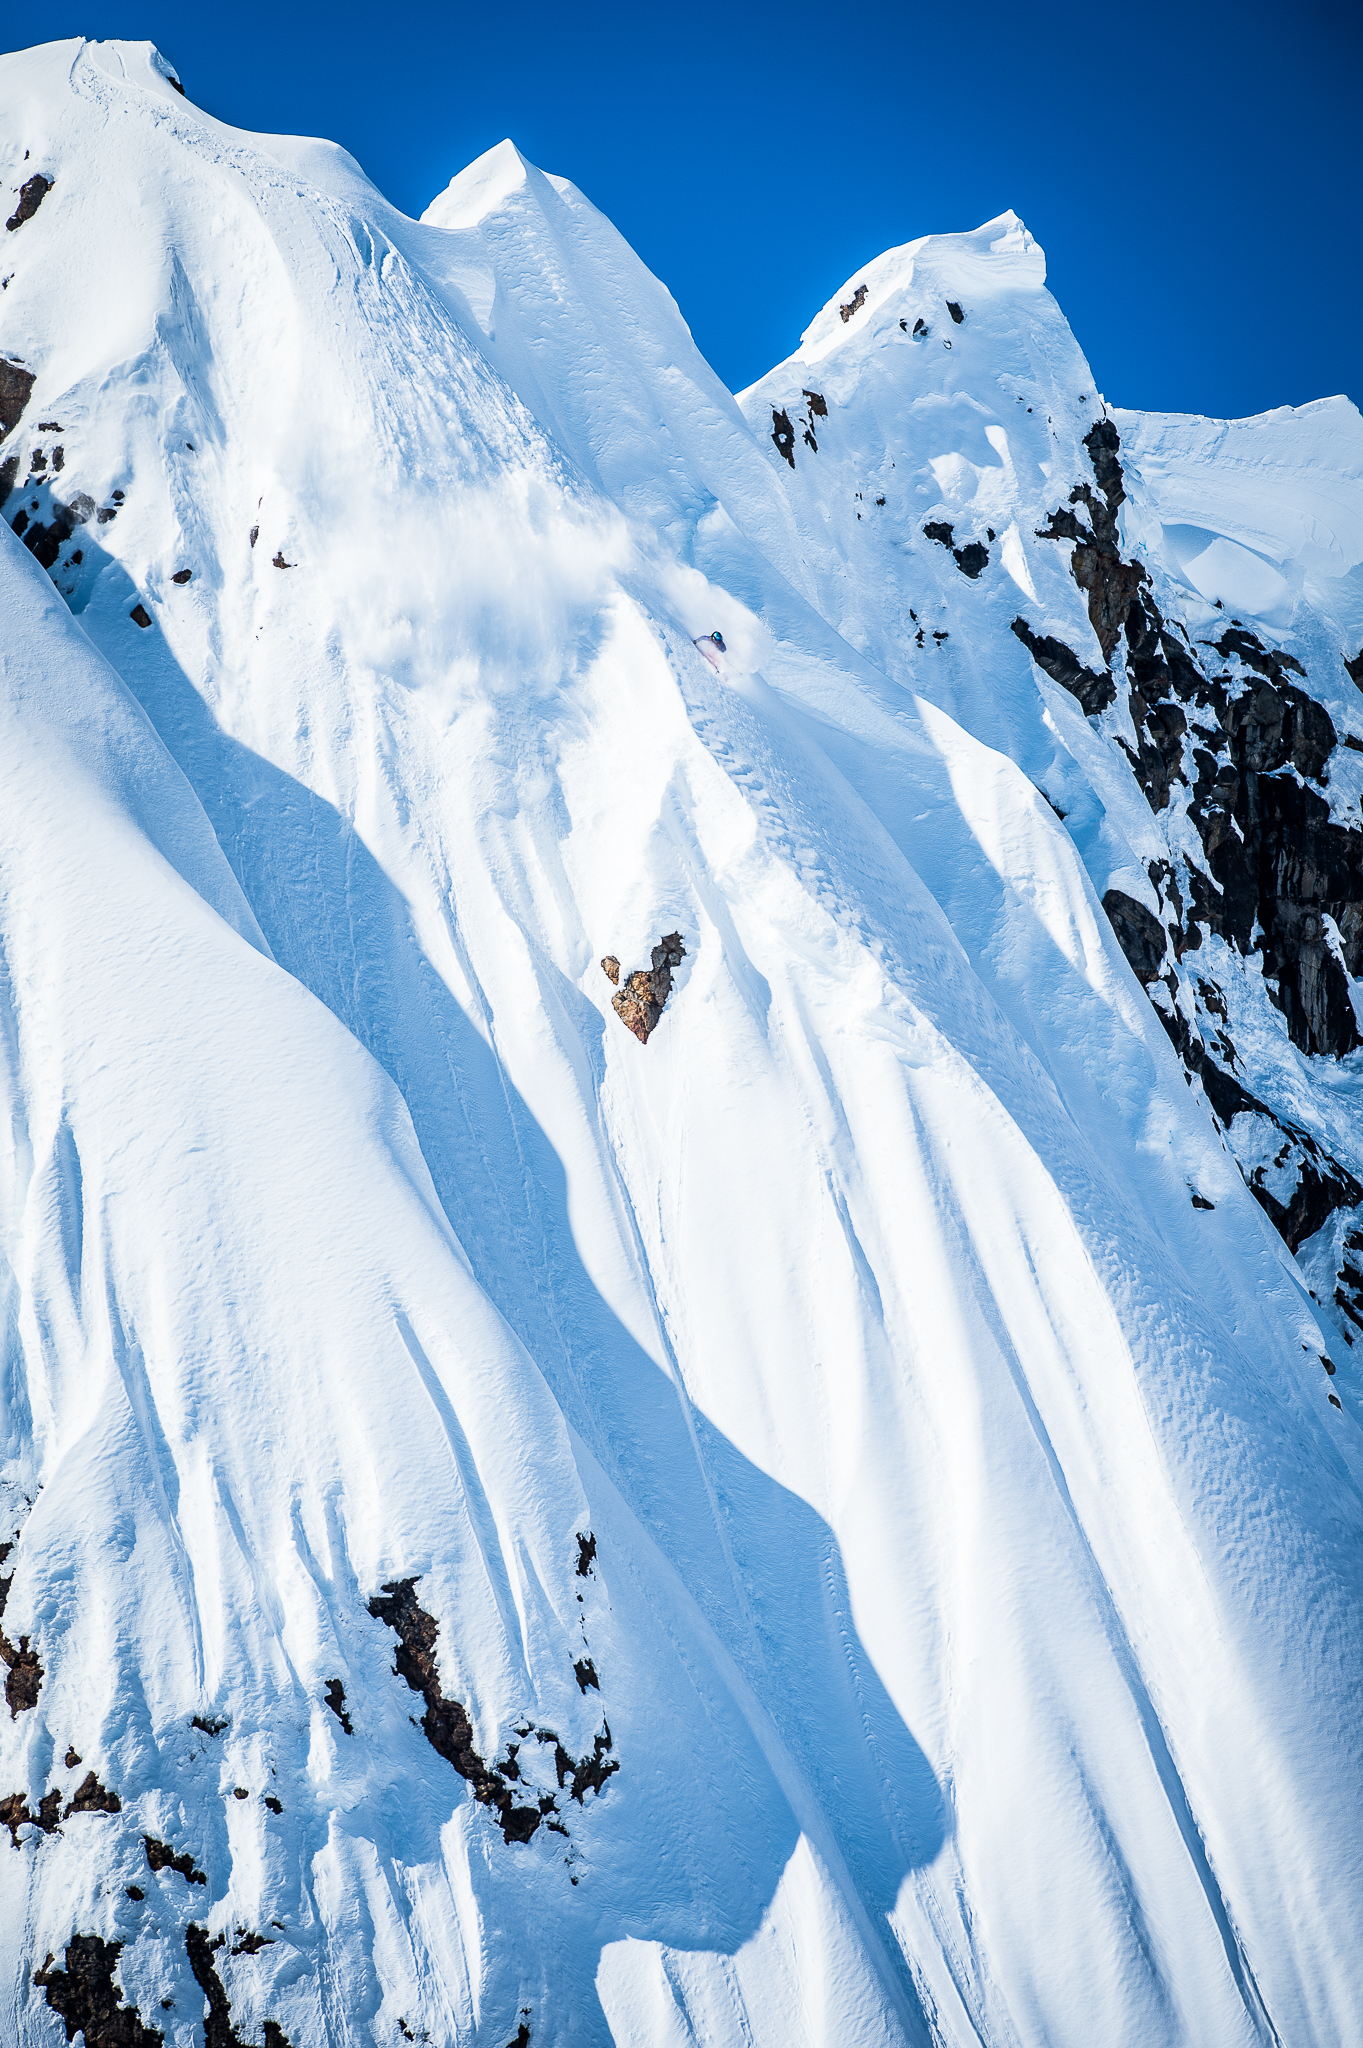 Angel Collinson in Juneau Alaska with TGR